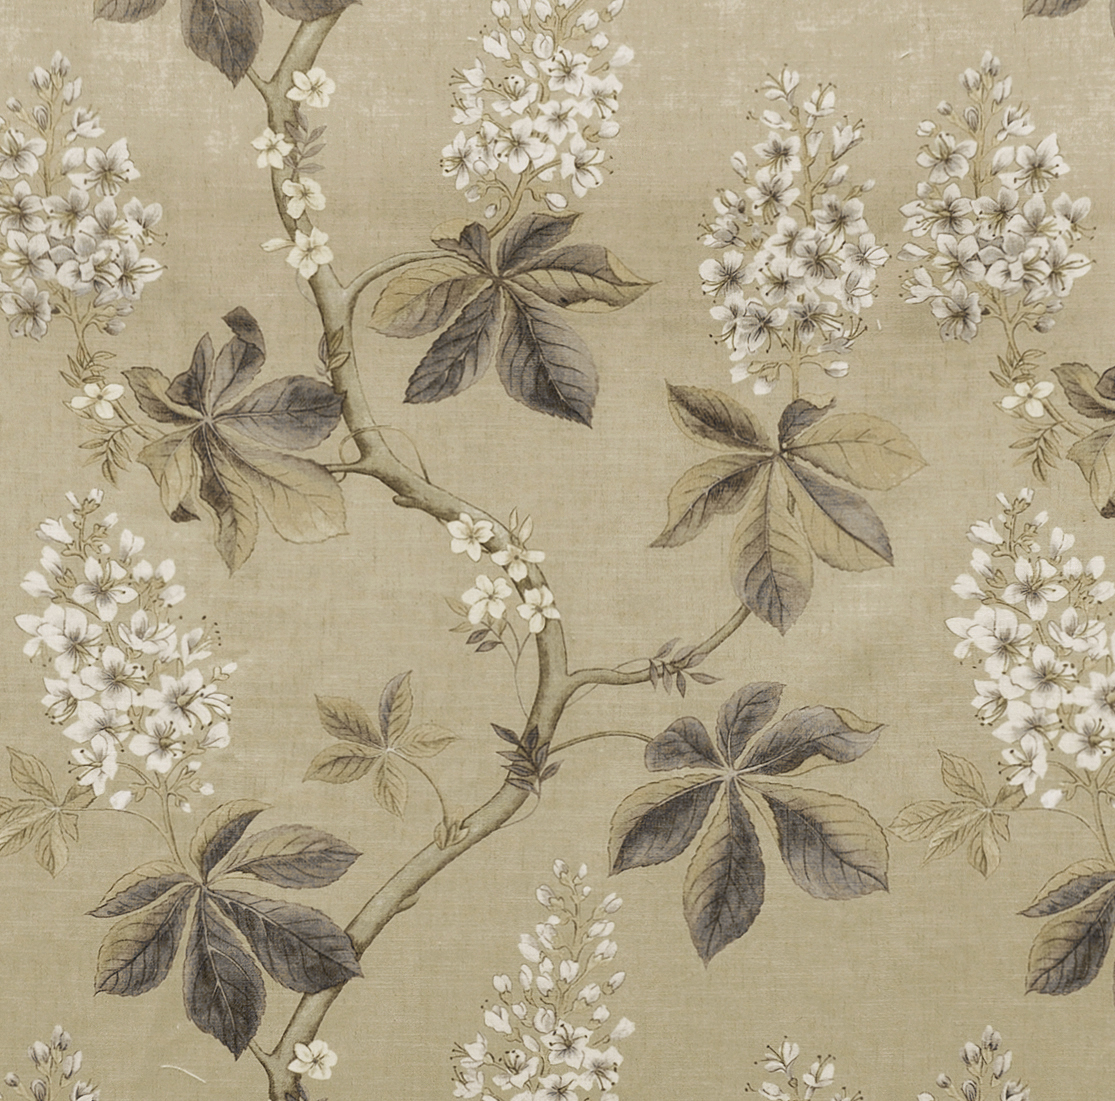 Frey Floral Print Fabric Swatch Polyester Cotton, Refundable For Order Amount Over $399